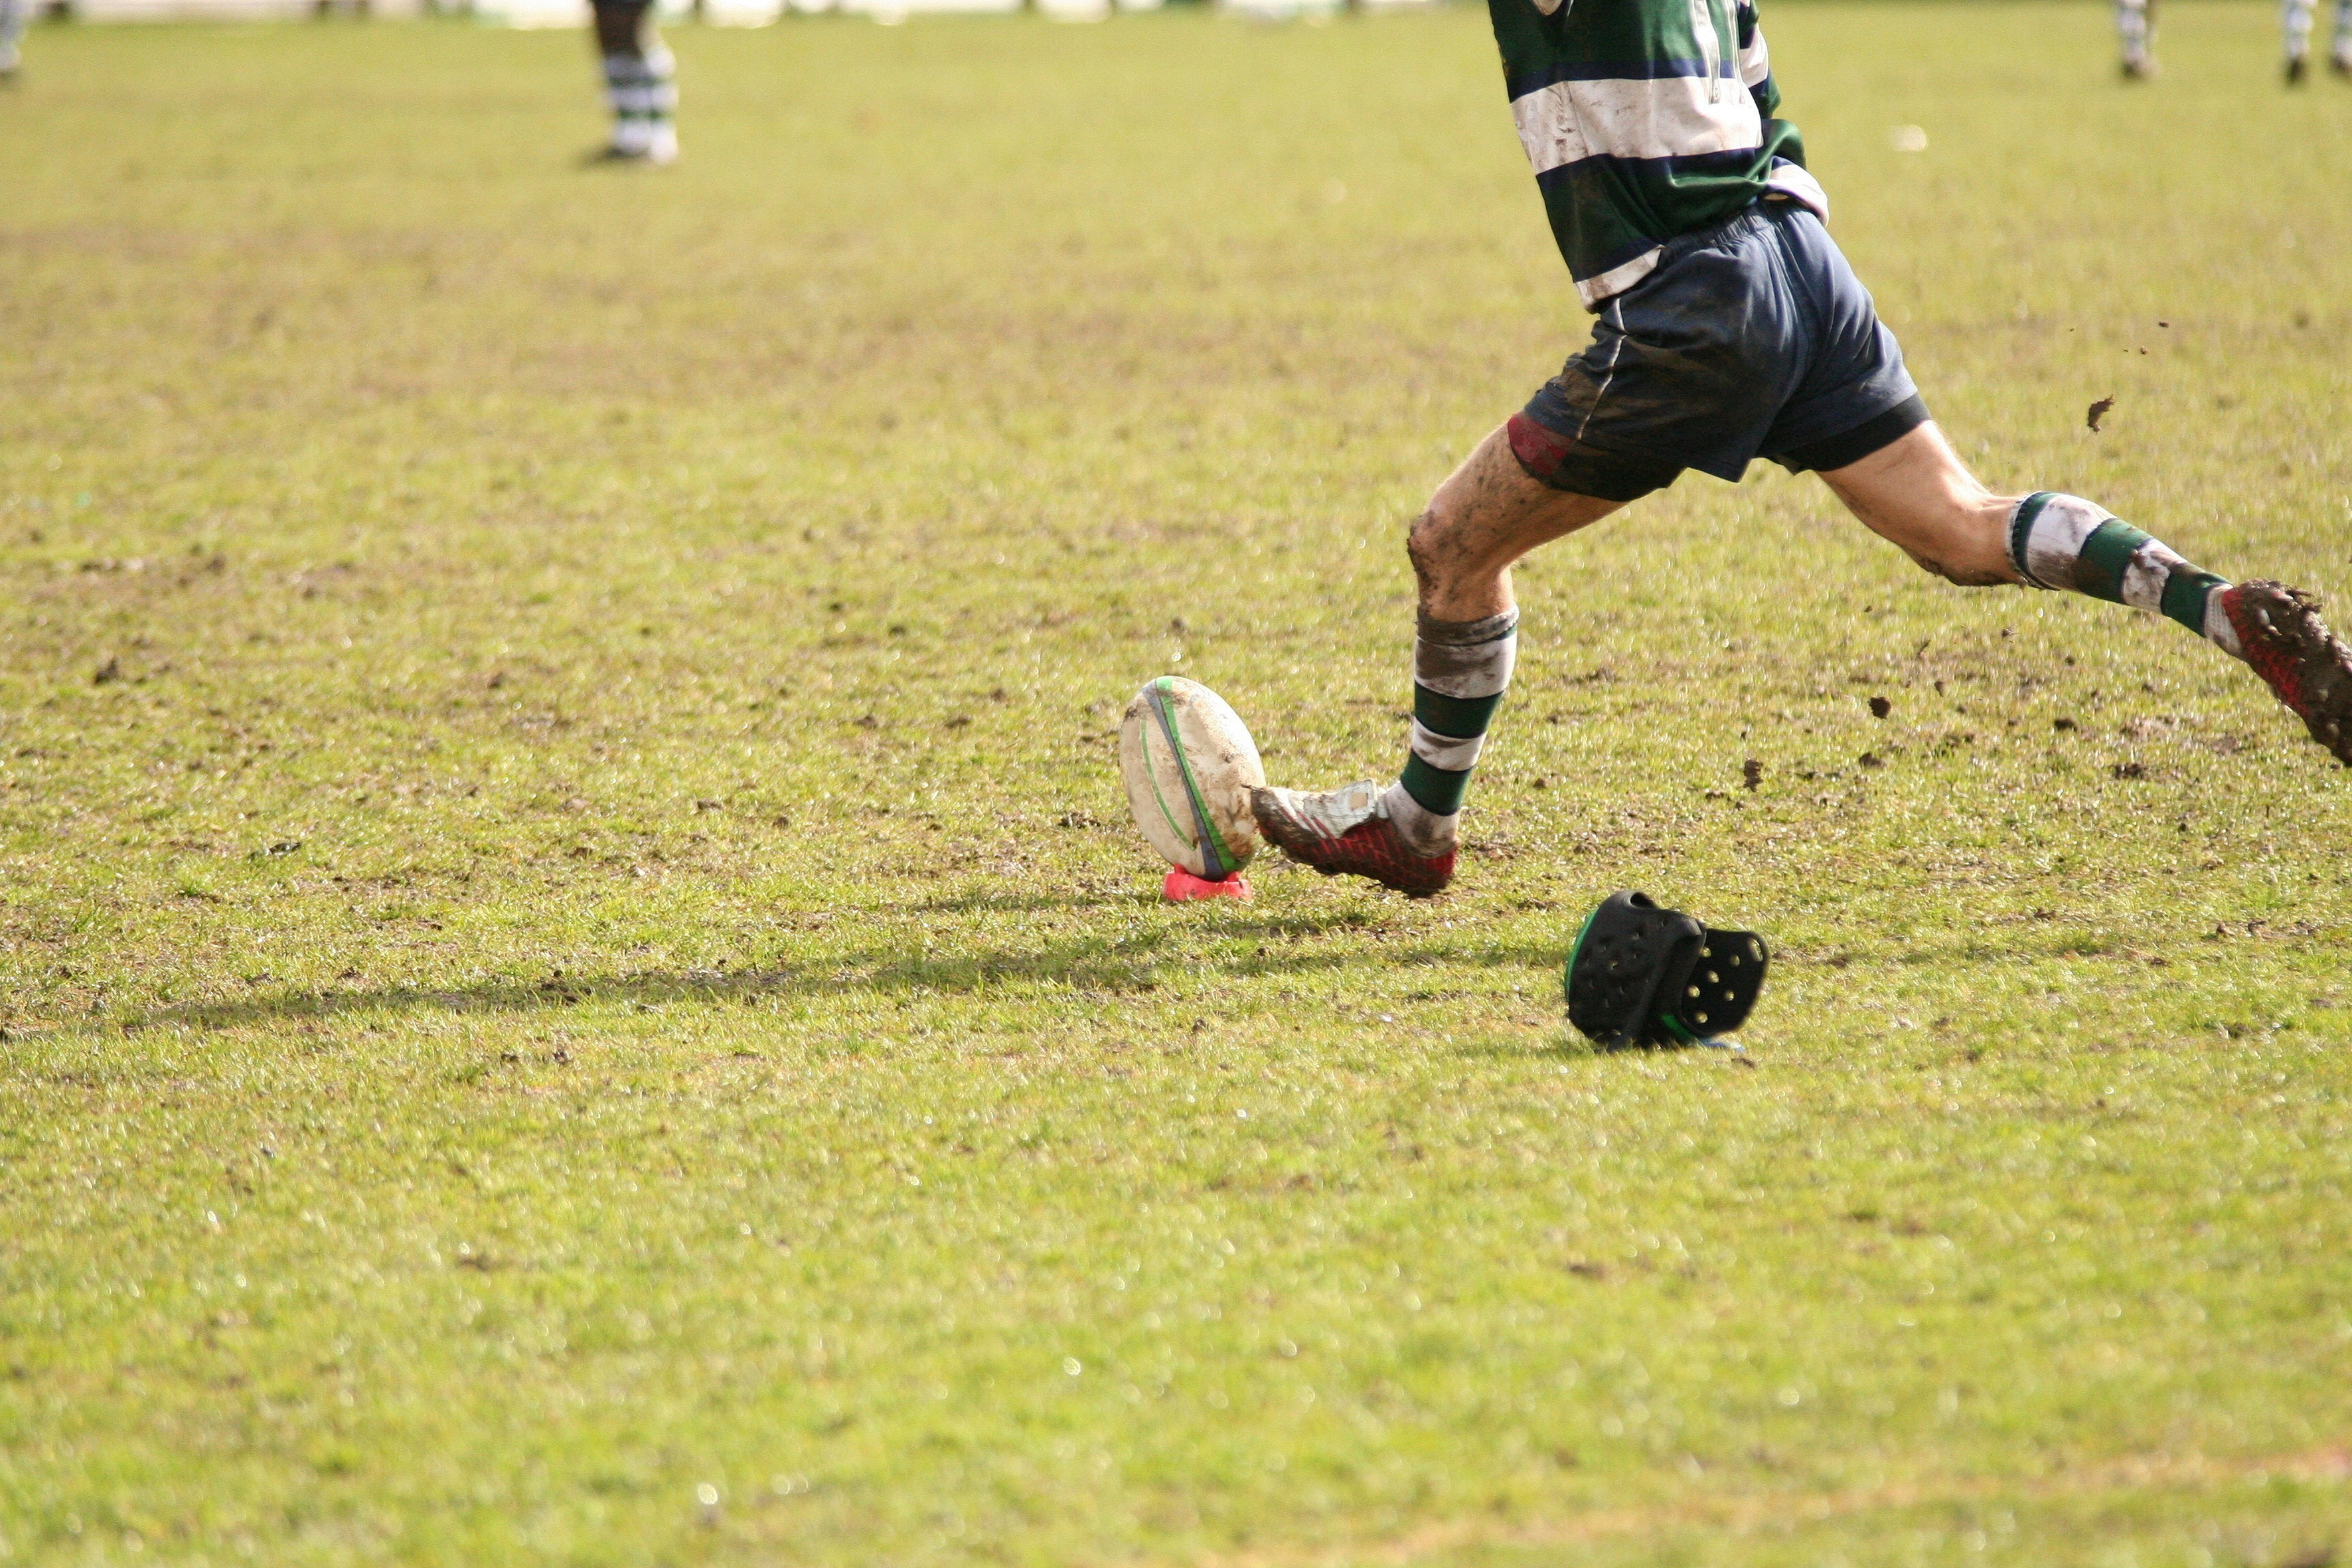 Rugby-rvb